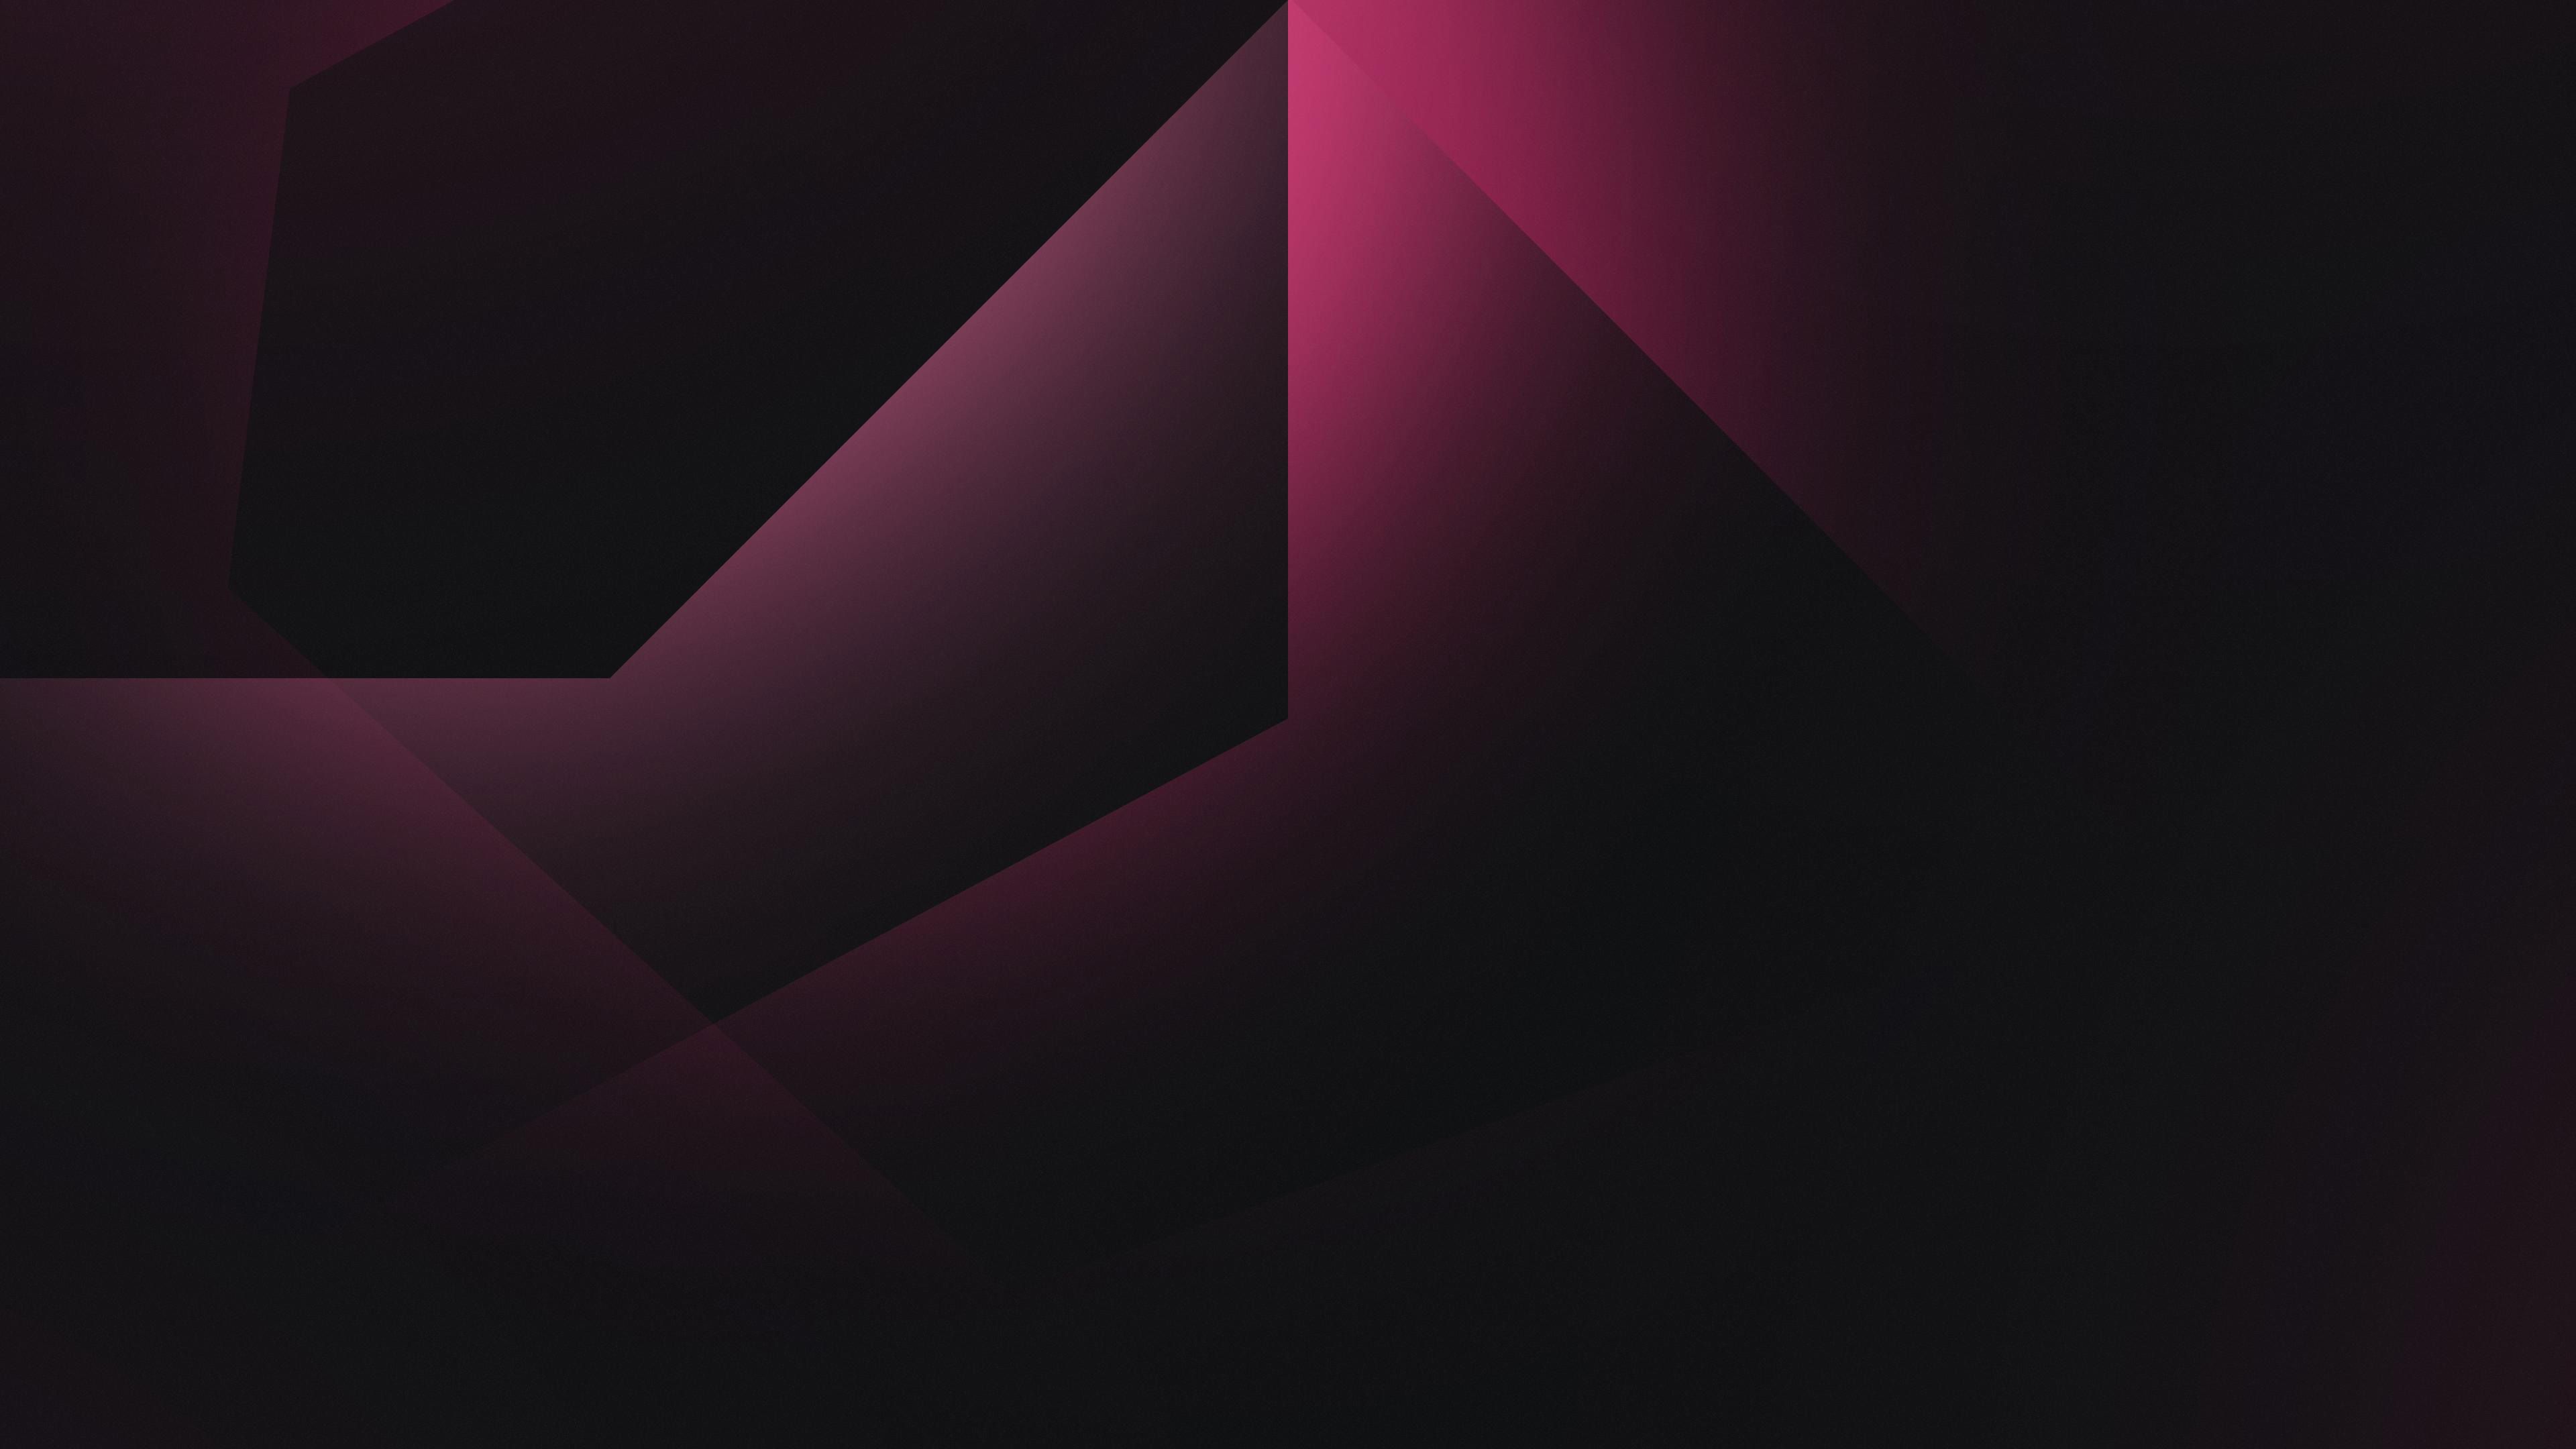 Dark Abstract Wallpaper 4k Ultra Hd: Abstract Dark Red 4k, HD Abstract, 4k Wallpapers, Images